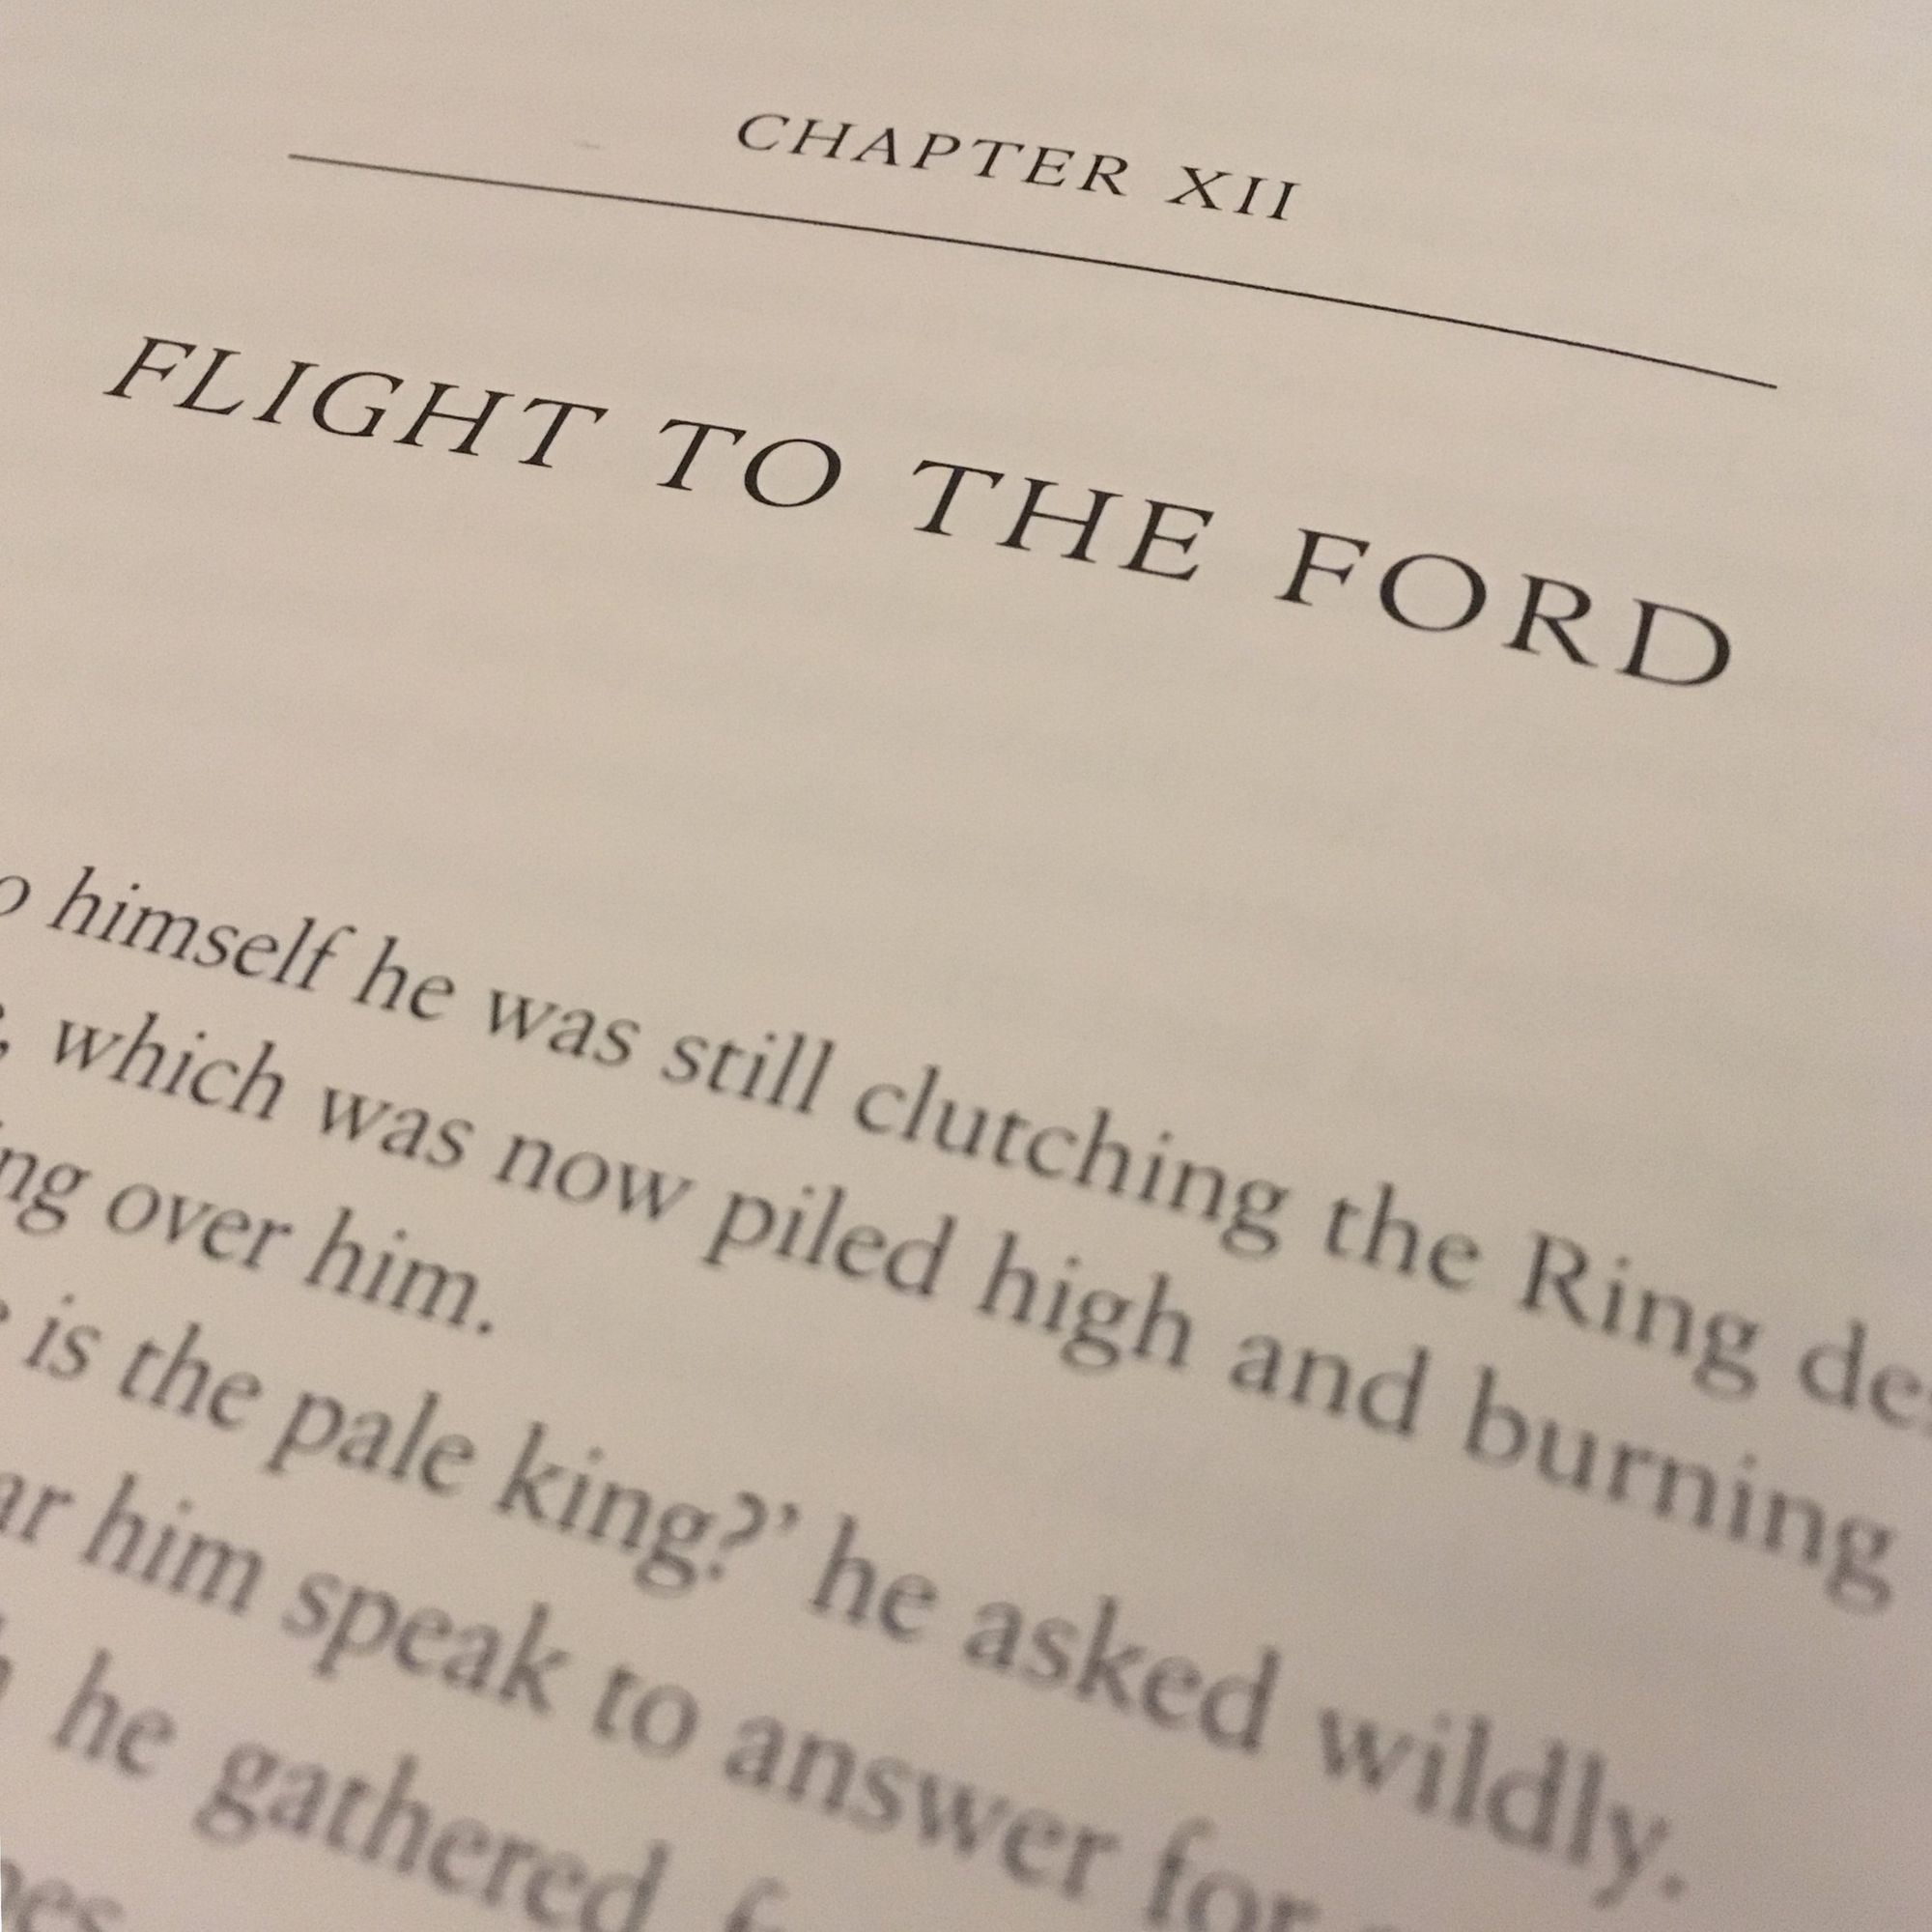 The Fellowship of The Ring: Flight to the Ford